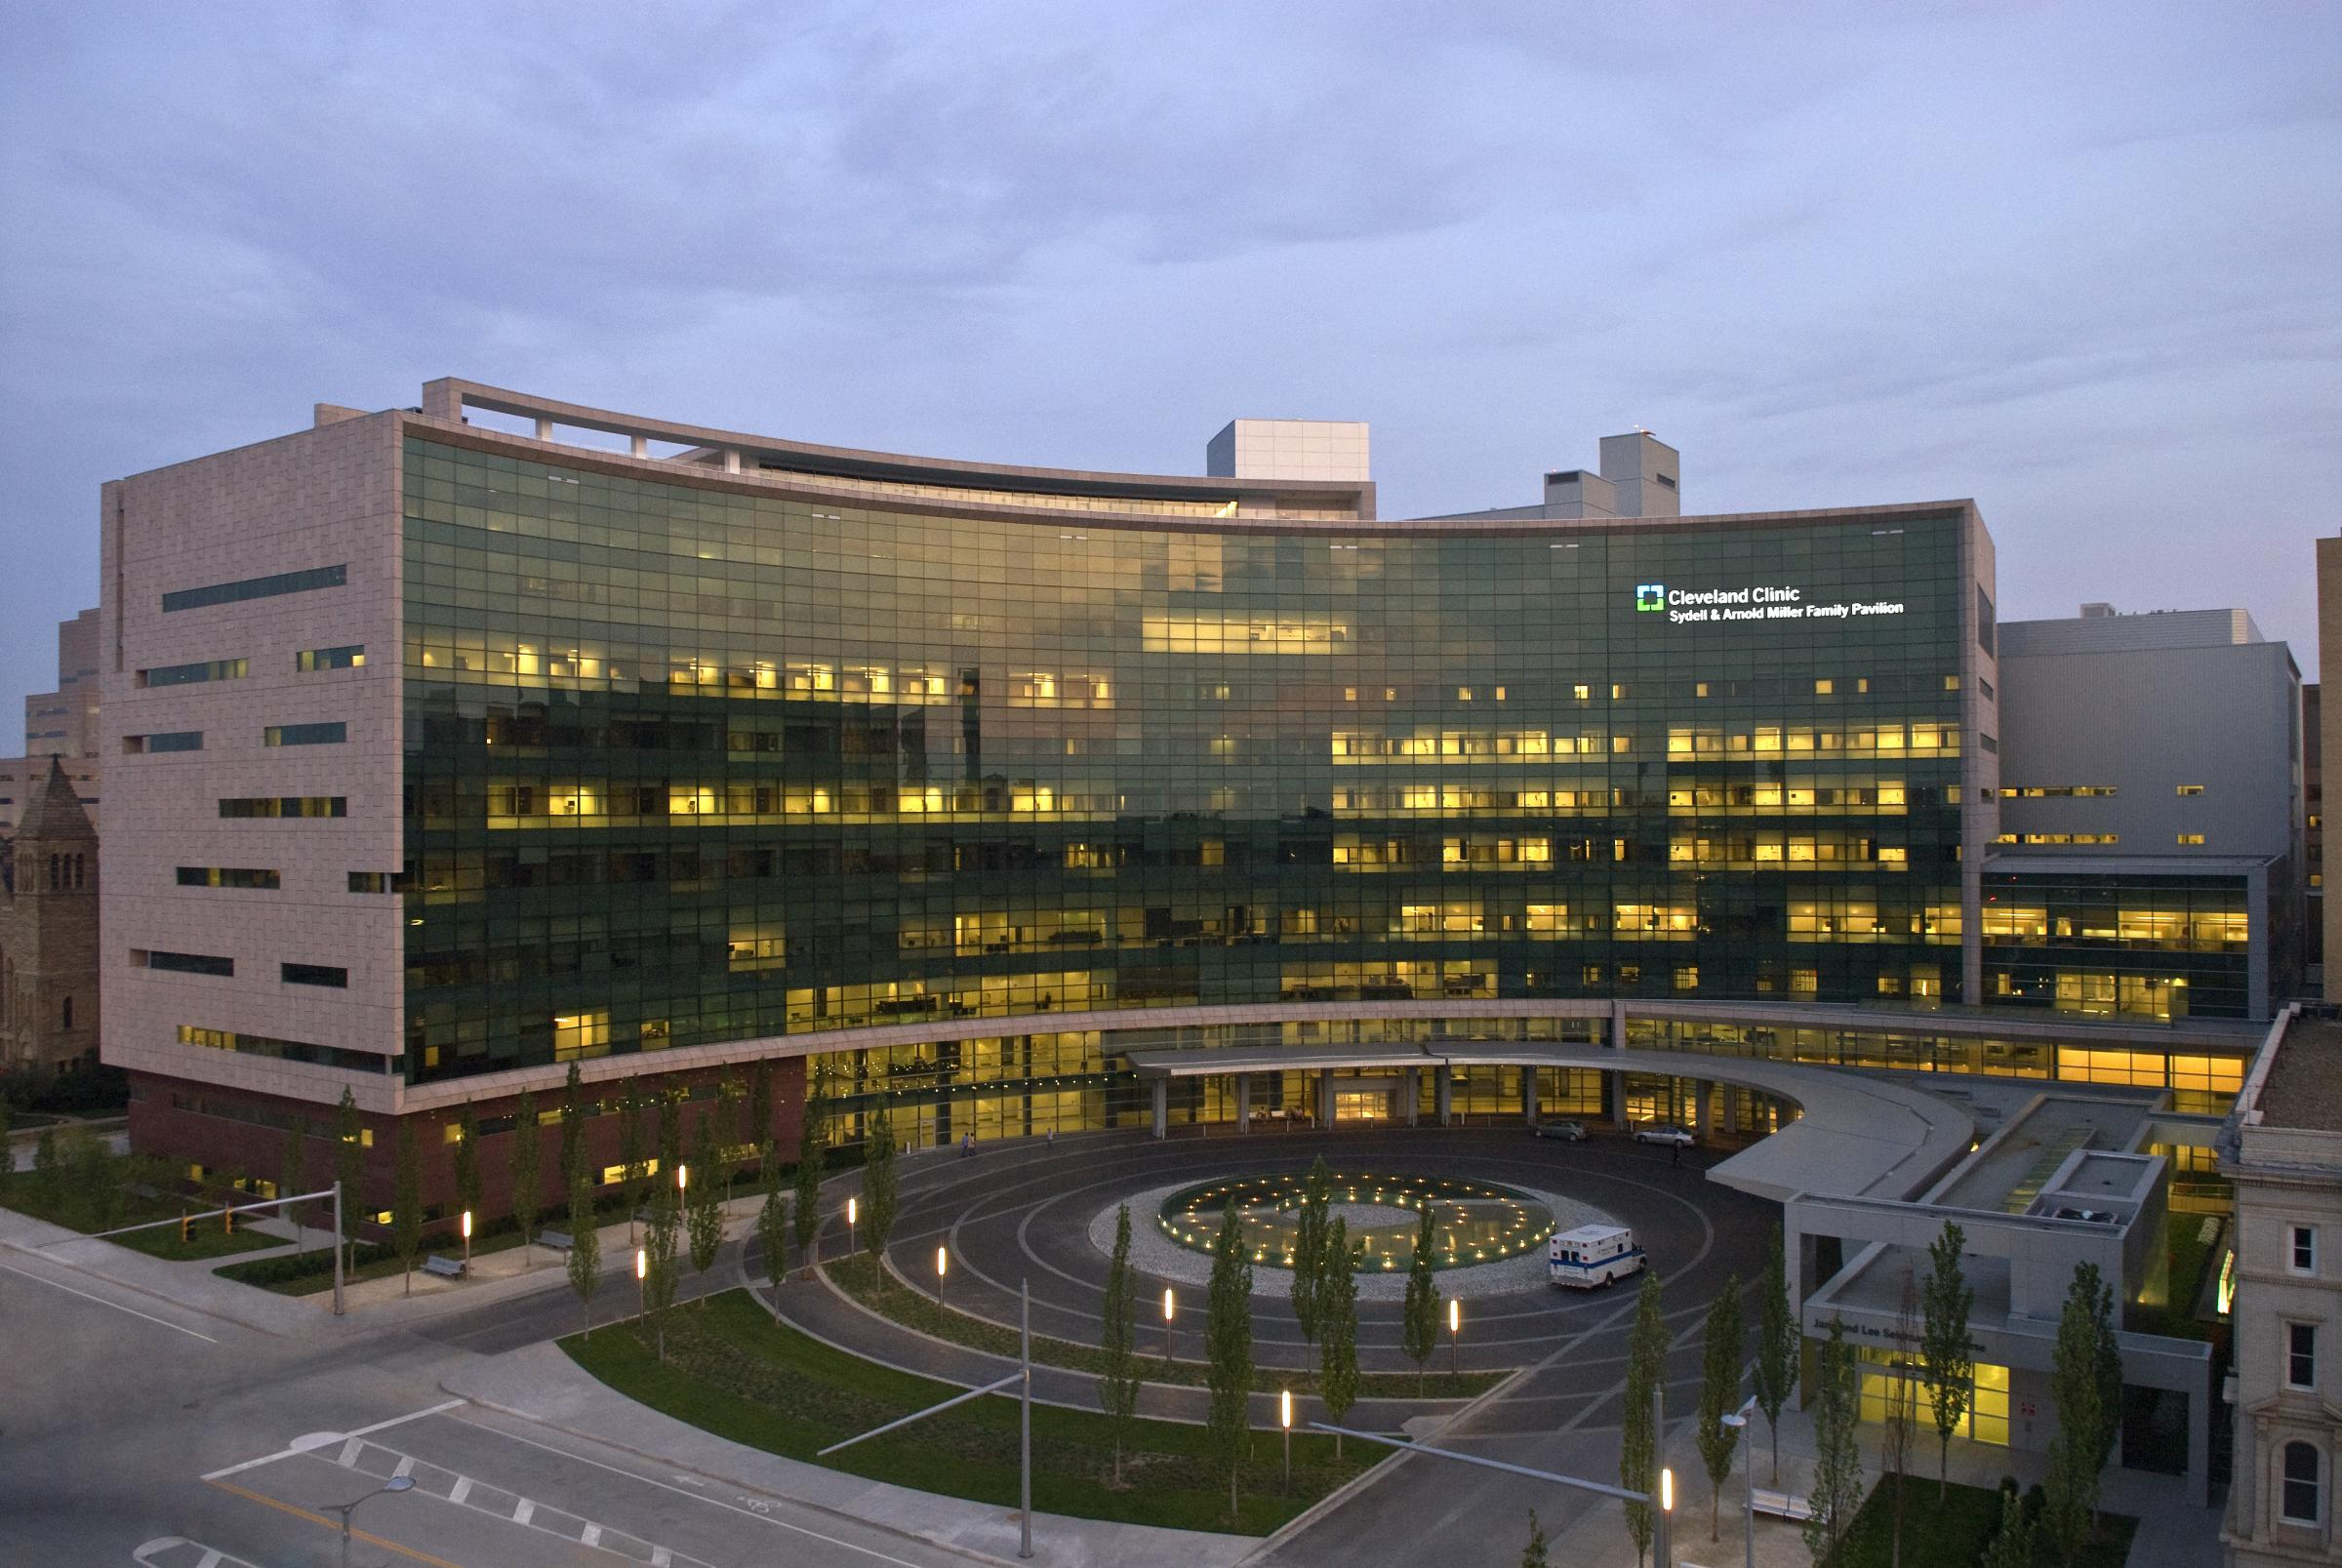 can health care be a magic bullet for the midwest part 3 the cleveland clinic helps set cleveland apart as a medical city